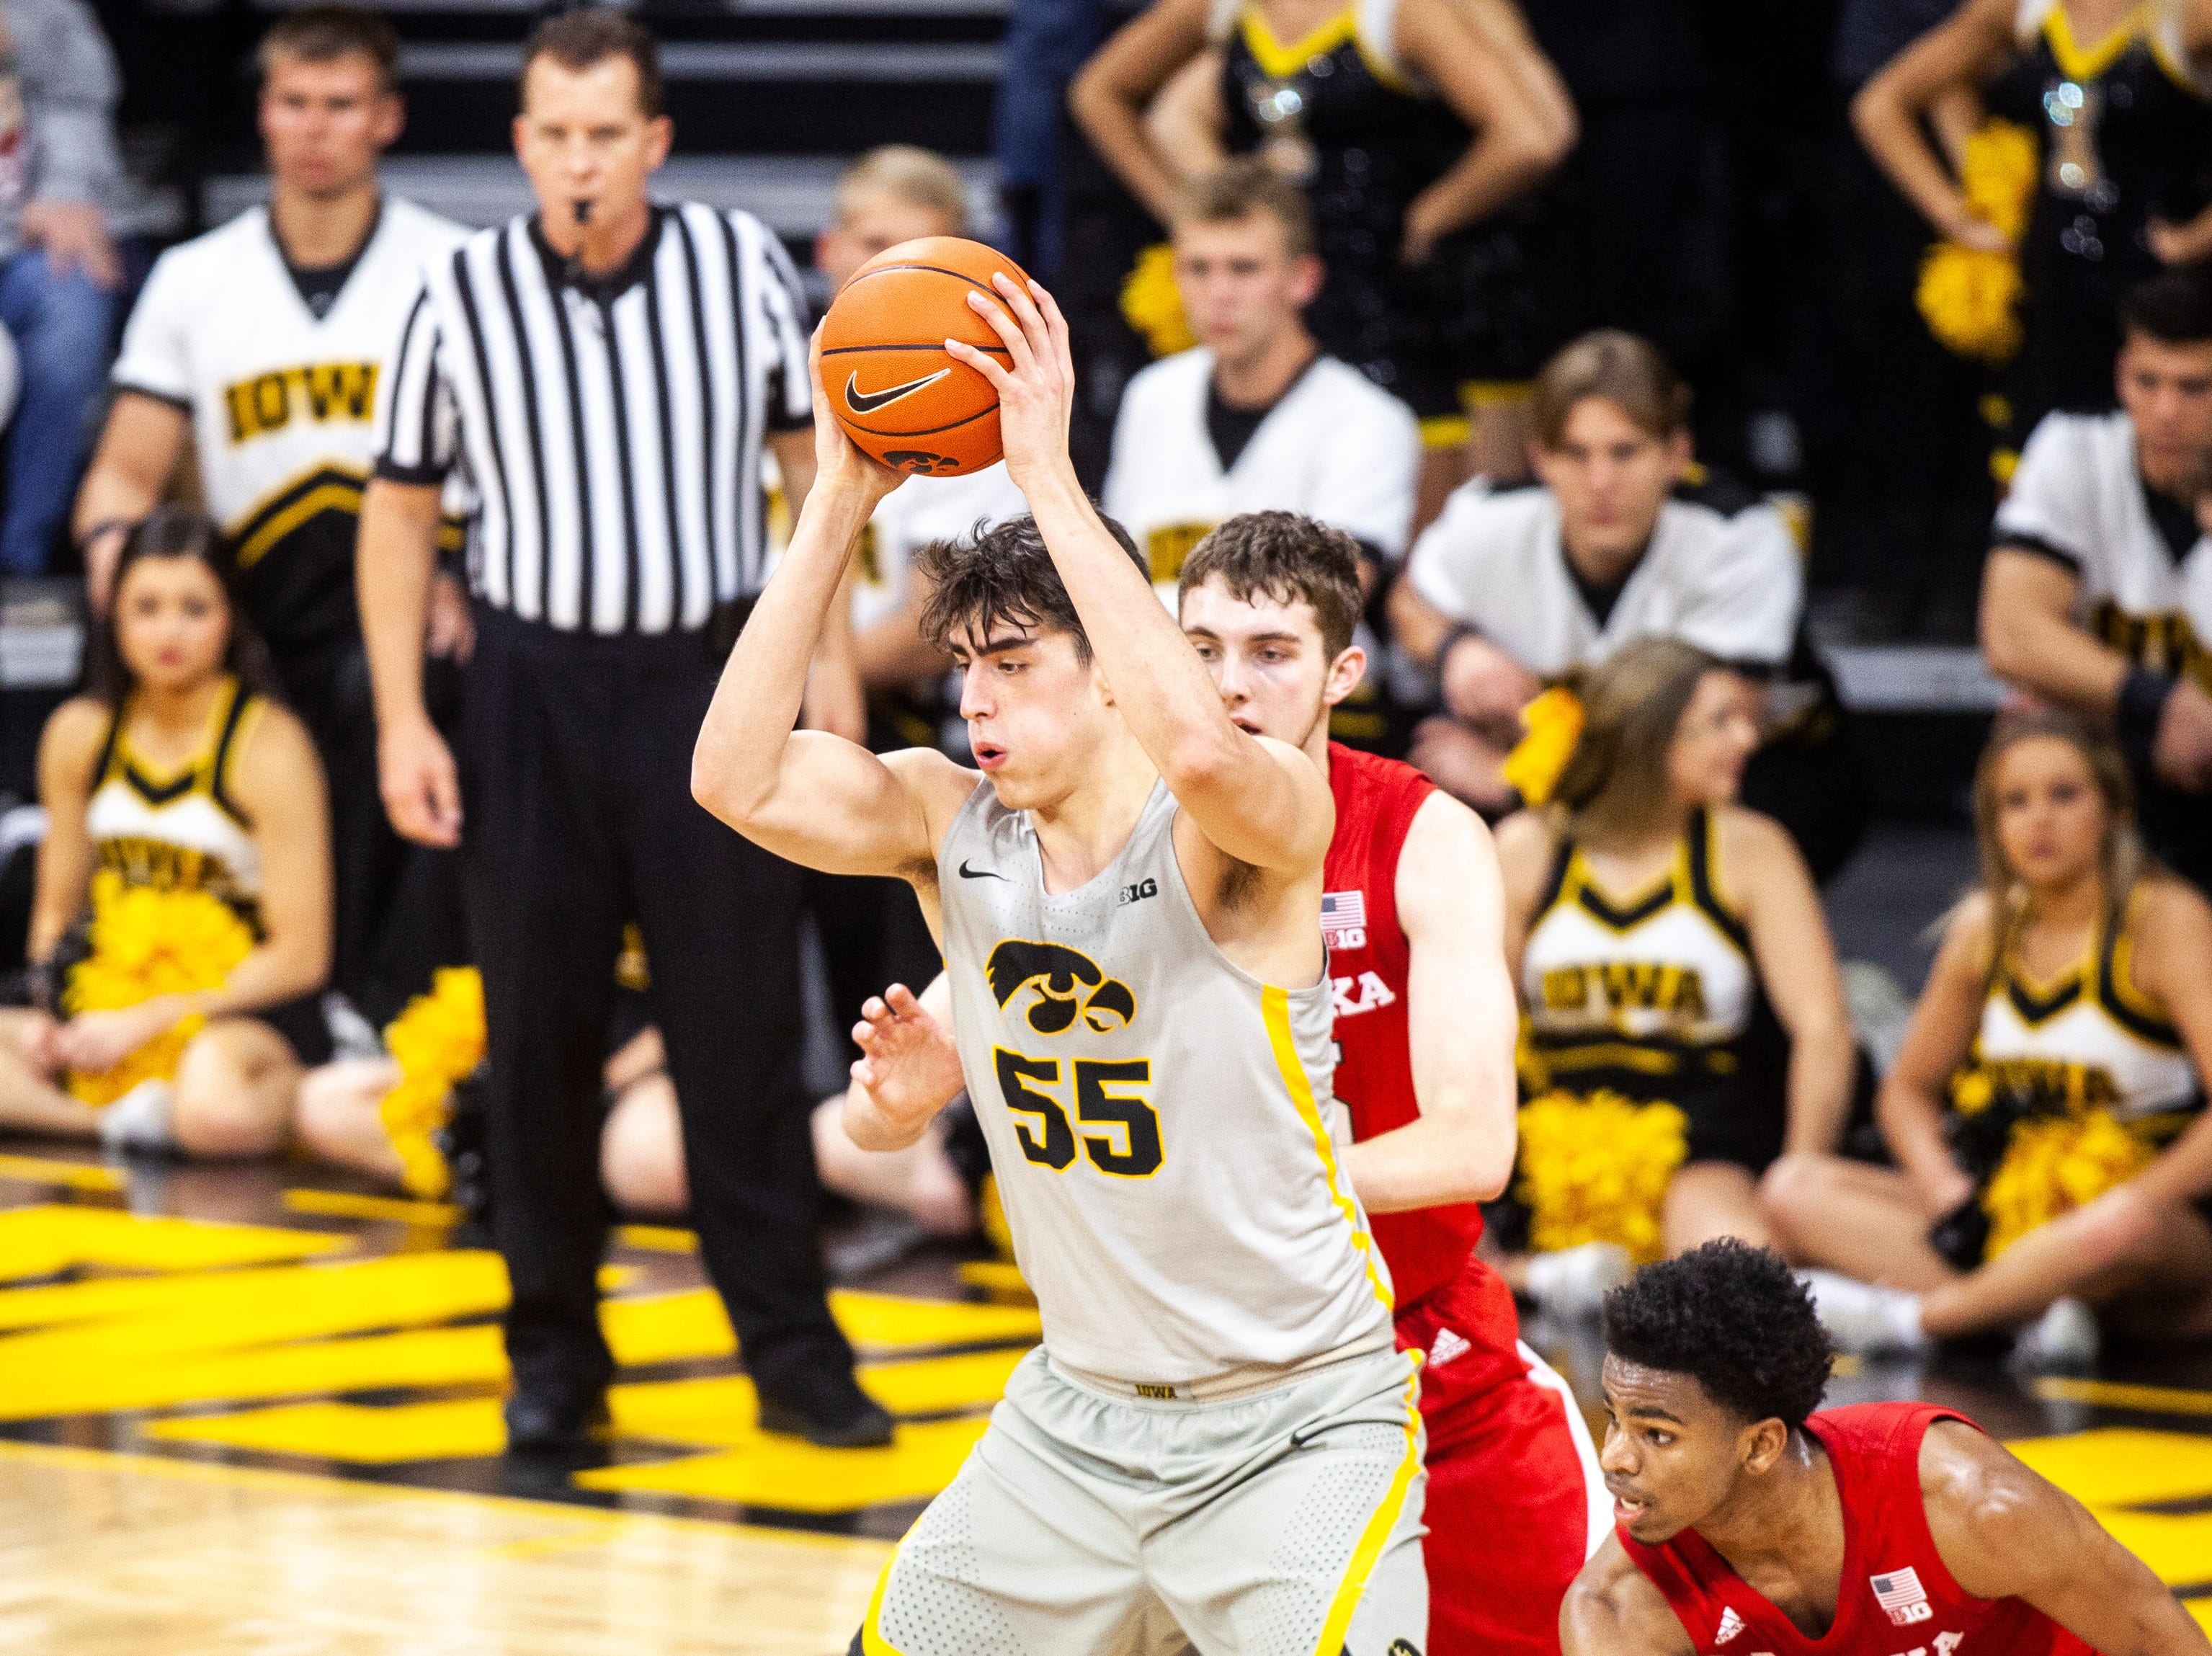 Iowa forward Luka Garza (55) looks to pass during a NCAA Big Ten Conference men's basketball game on Sunday, Jan. 6, 2019, at the Carver-Hawkeye Arena in Iowa City, Iowa.